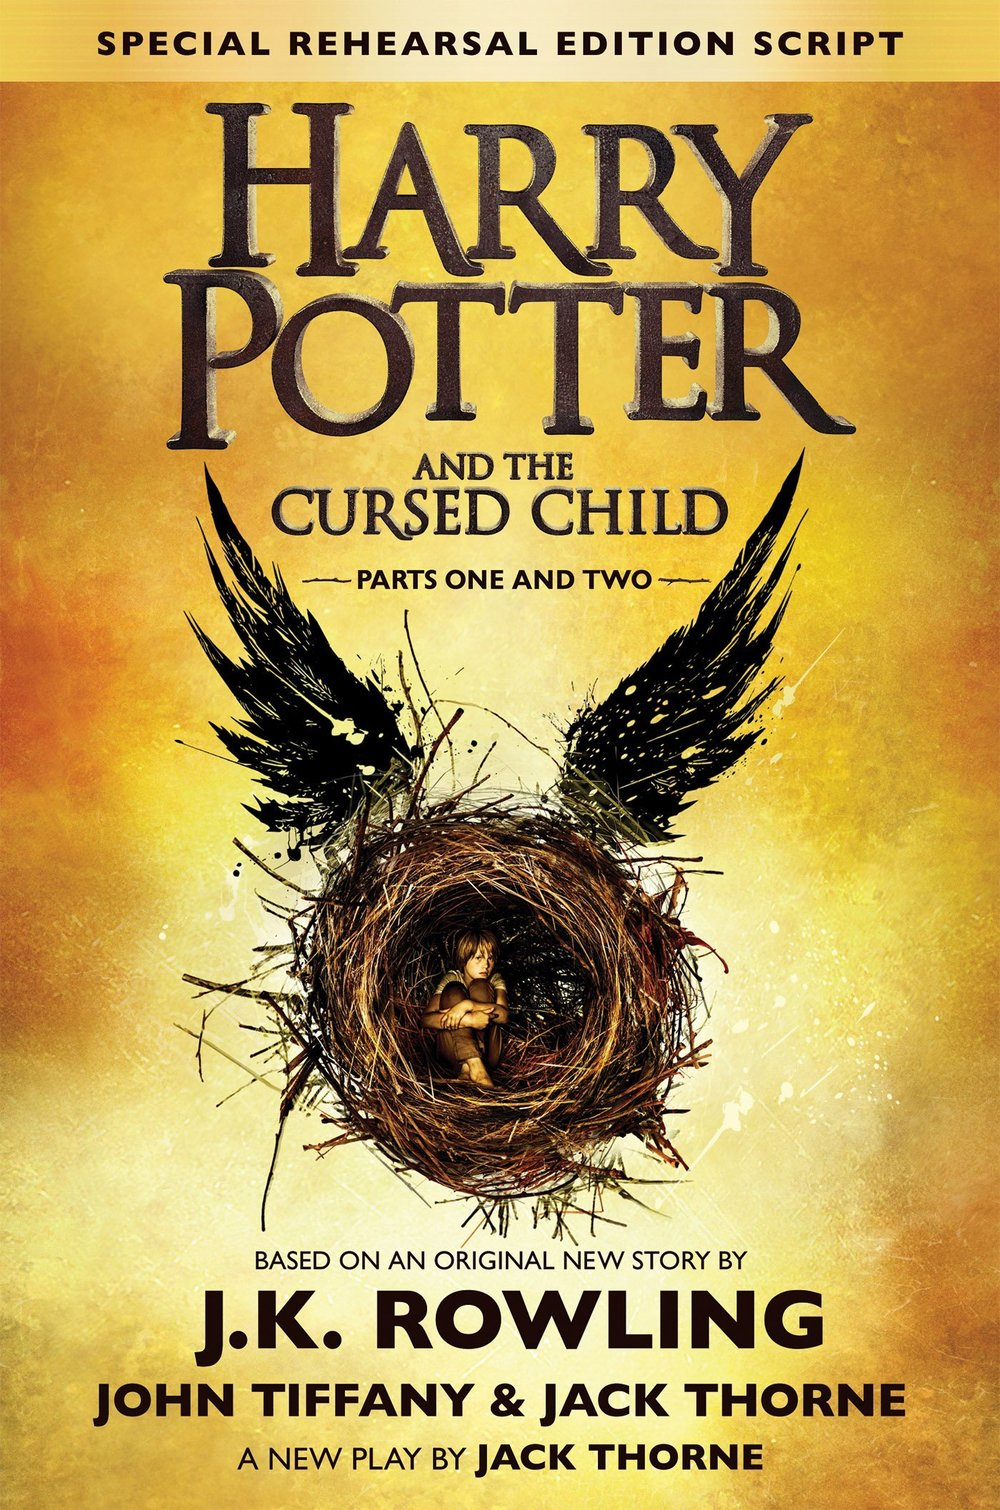 Harry Potter and the Cursed Child is a two-part West End stage play written by Jack Thorne based on an original new story by Thorne, J.K. Rowling and John Tiffany.[1] Previews of the play began at the Palace Theatre, London on 7 June 2016,[2] and it was scheduled to officially premiere on 30 July 2016. The rehearsal script, not a novelisation of the play,[3] was released on 31 July 2016 and became the eighth story set in the Harry Potter universe.[4] The story is set nineteen years after the events of Harry Potter and the Deathly Hallows and follows Harry Potter, now a Ministry of Magic employee, and his younger son Albus Severus Potter.